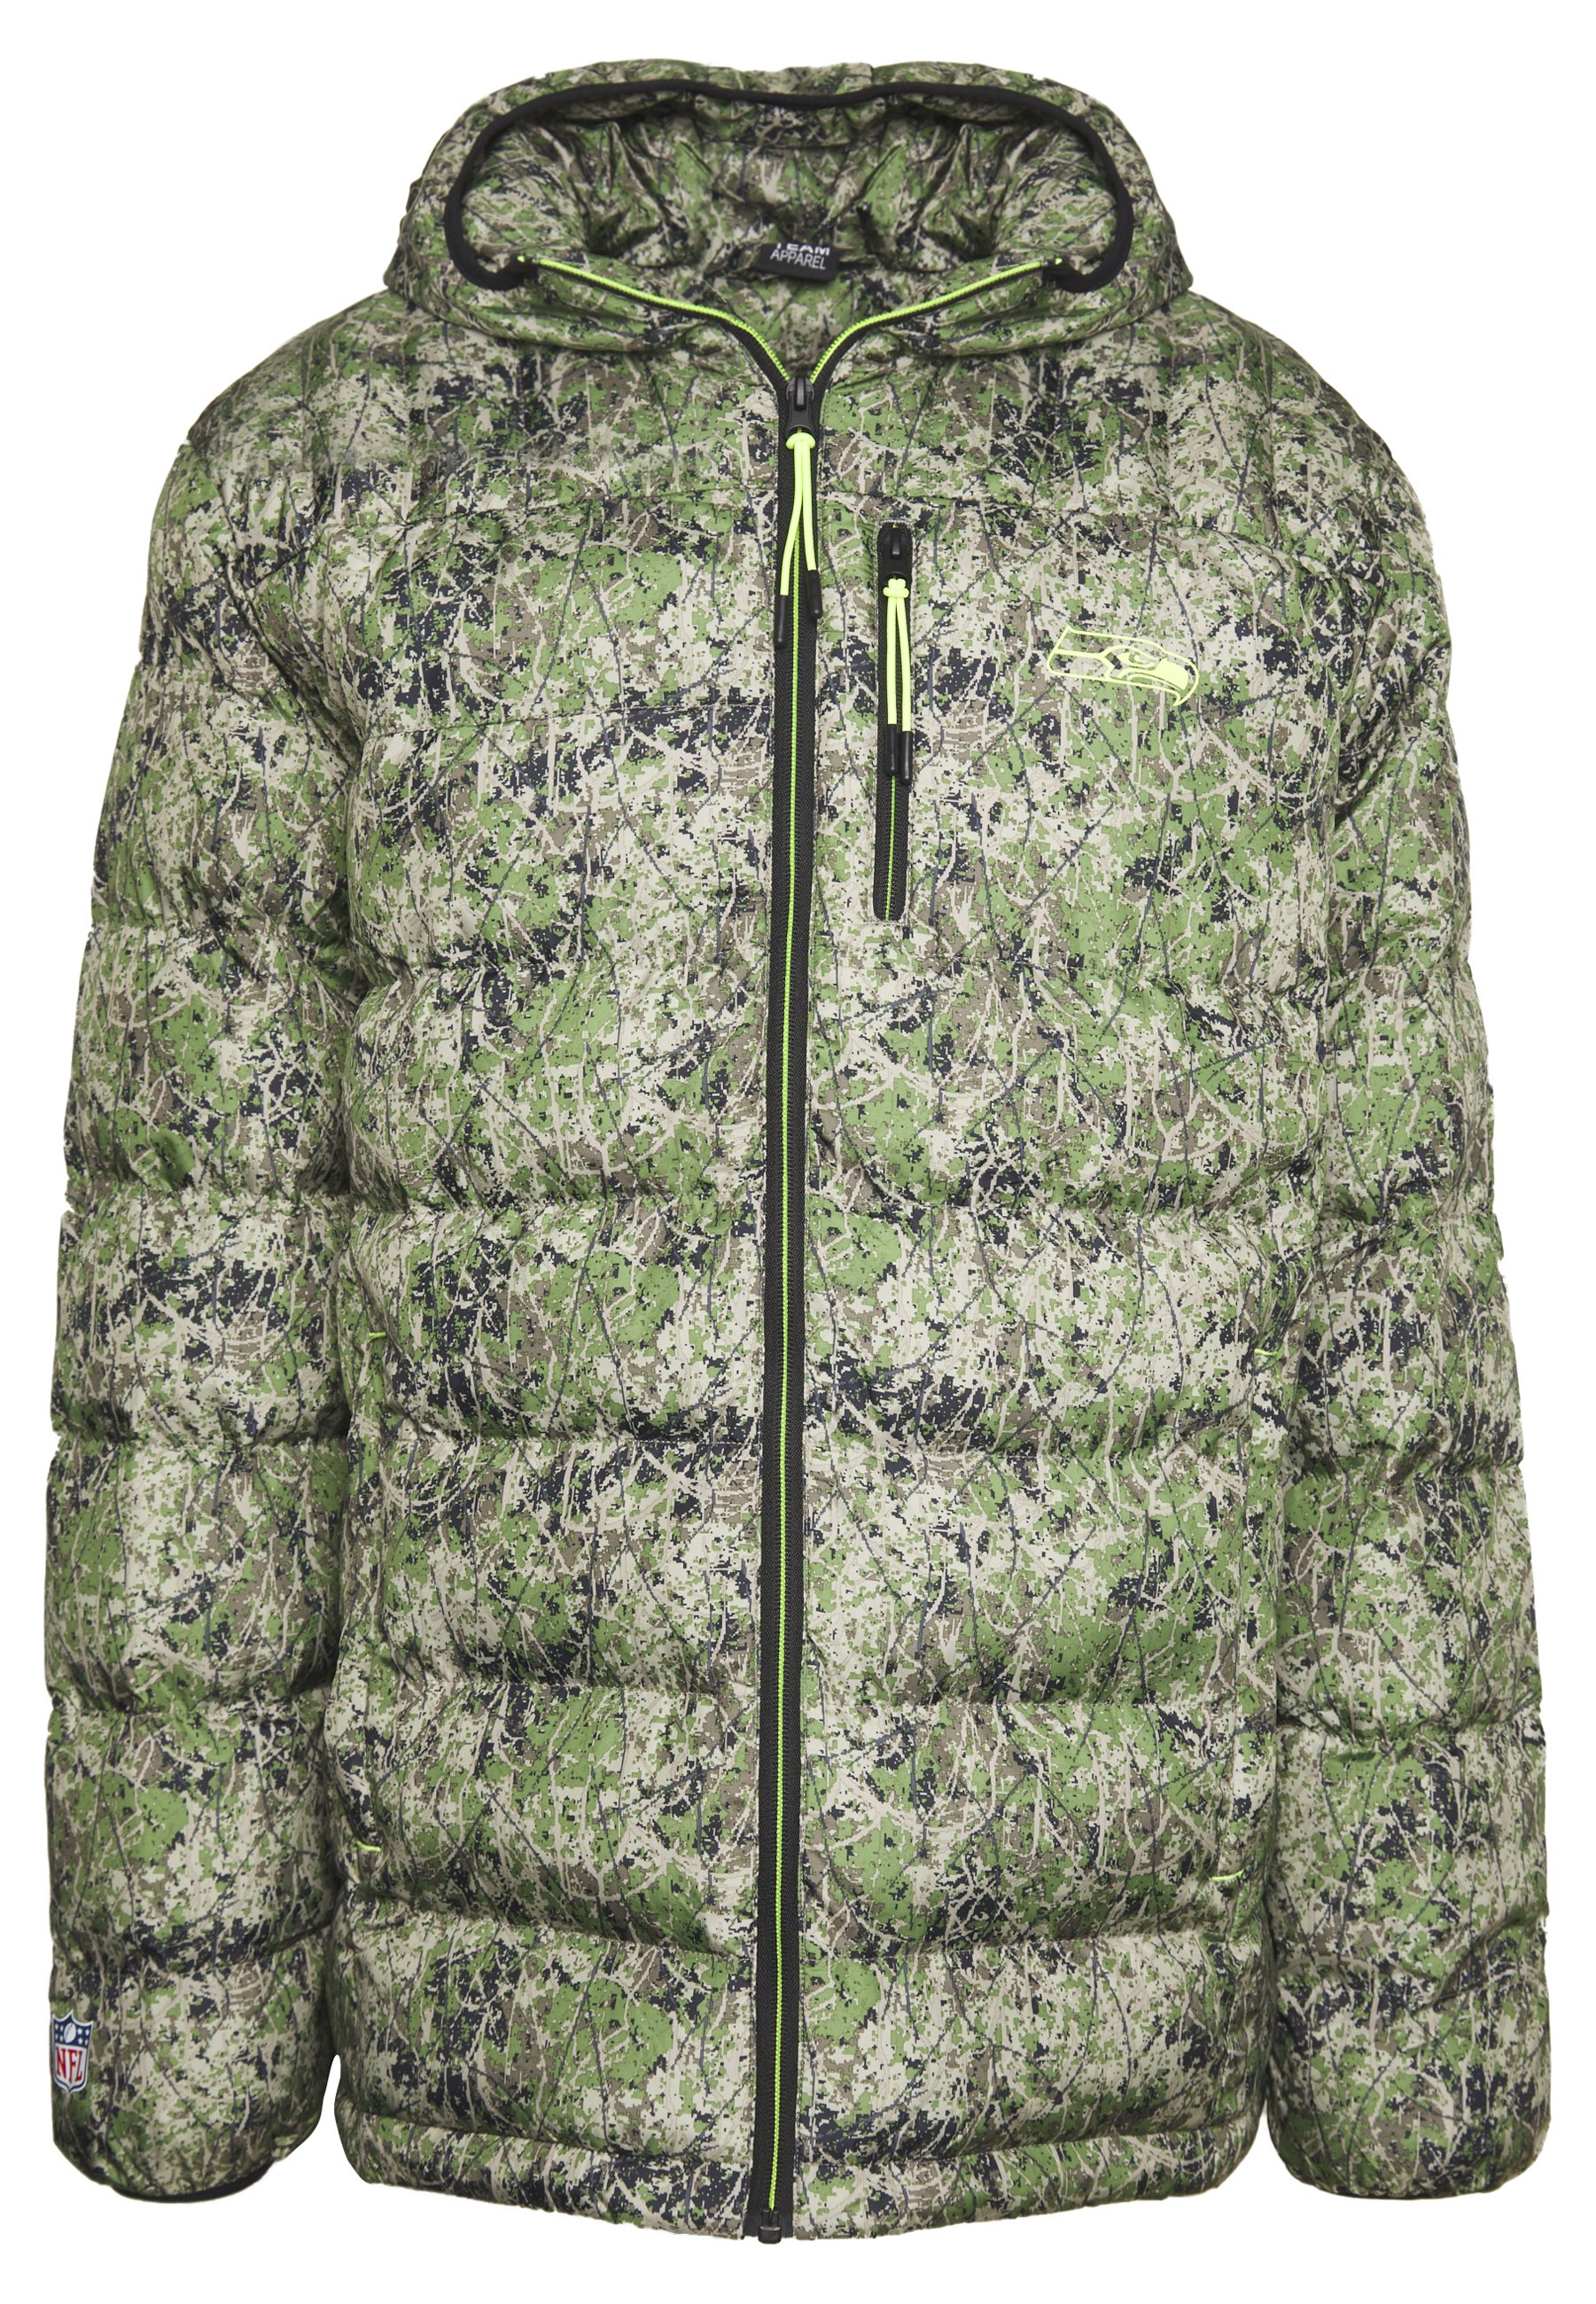 Fanatics Nfl Seattle Seahawks Padded Jacket - Klubbkläder Multicolor